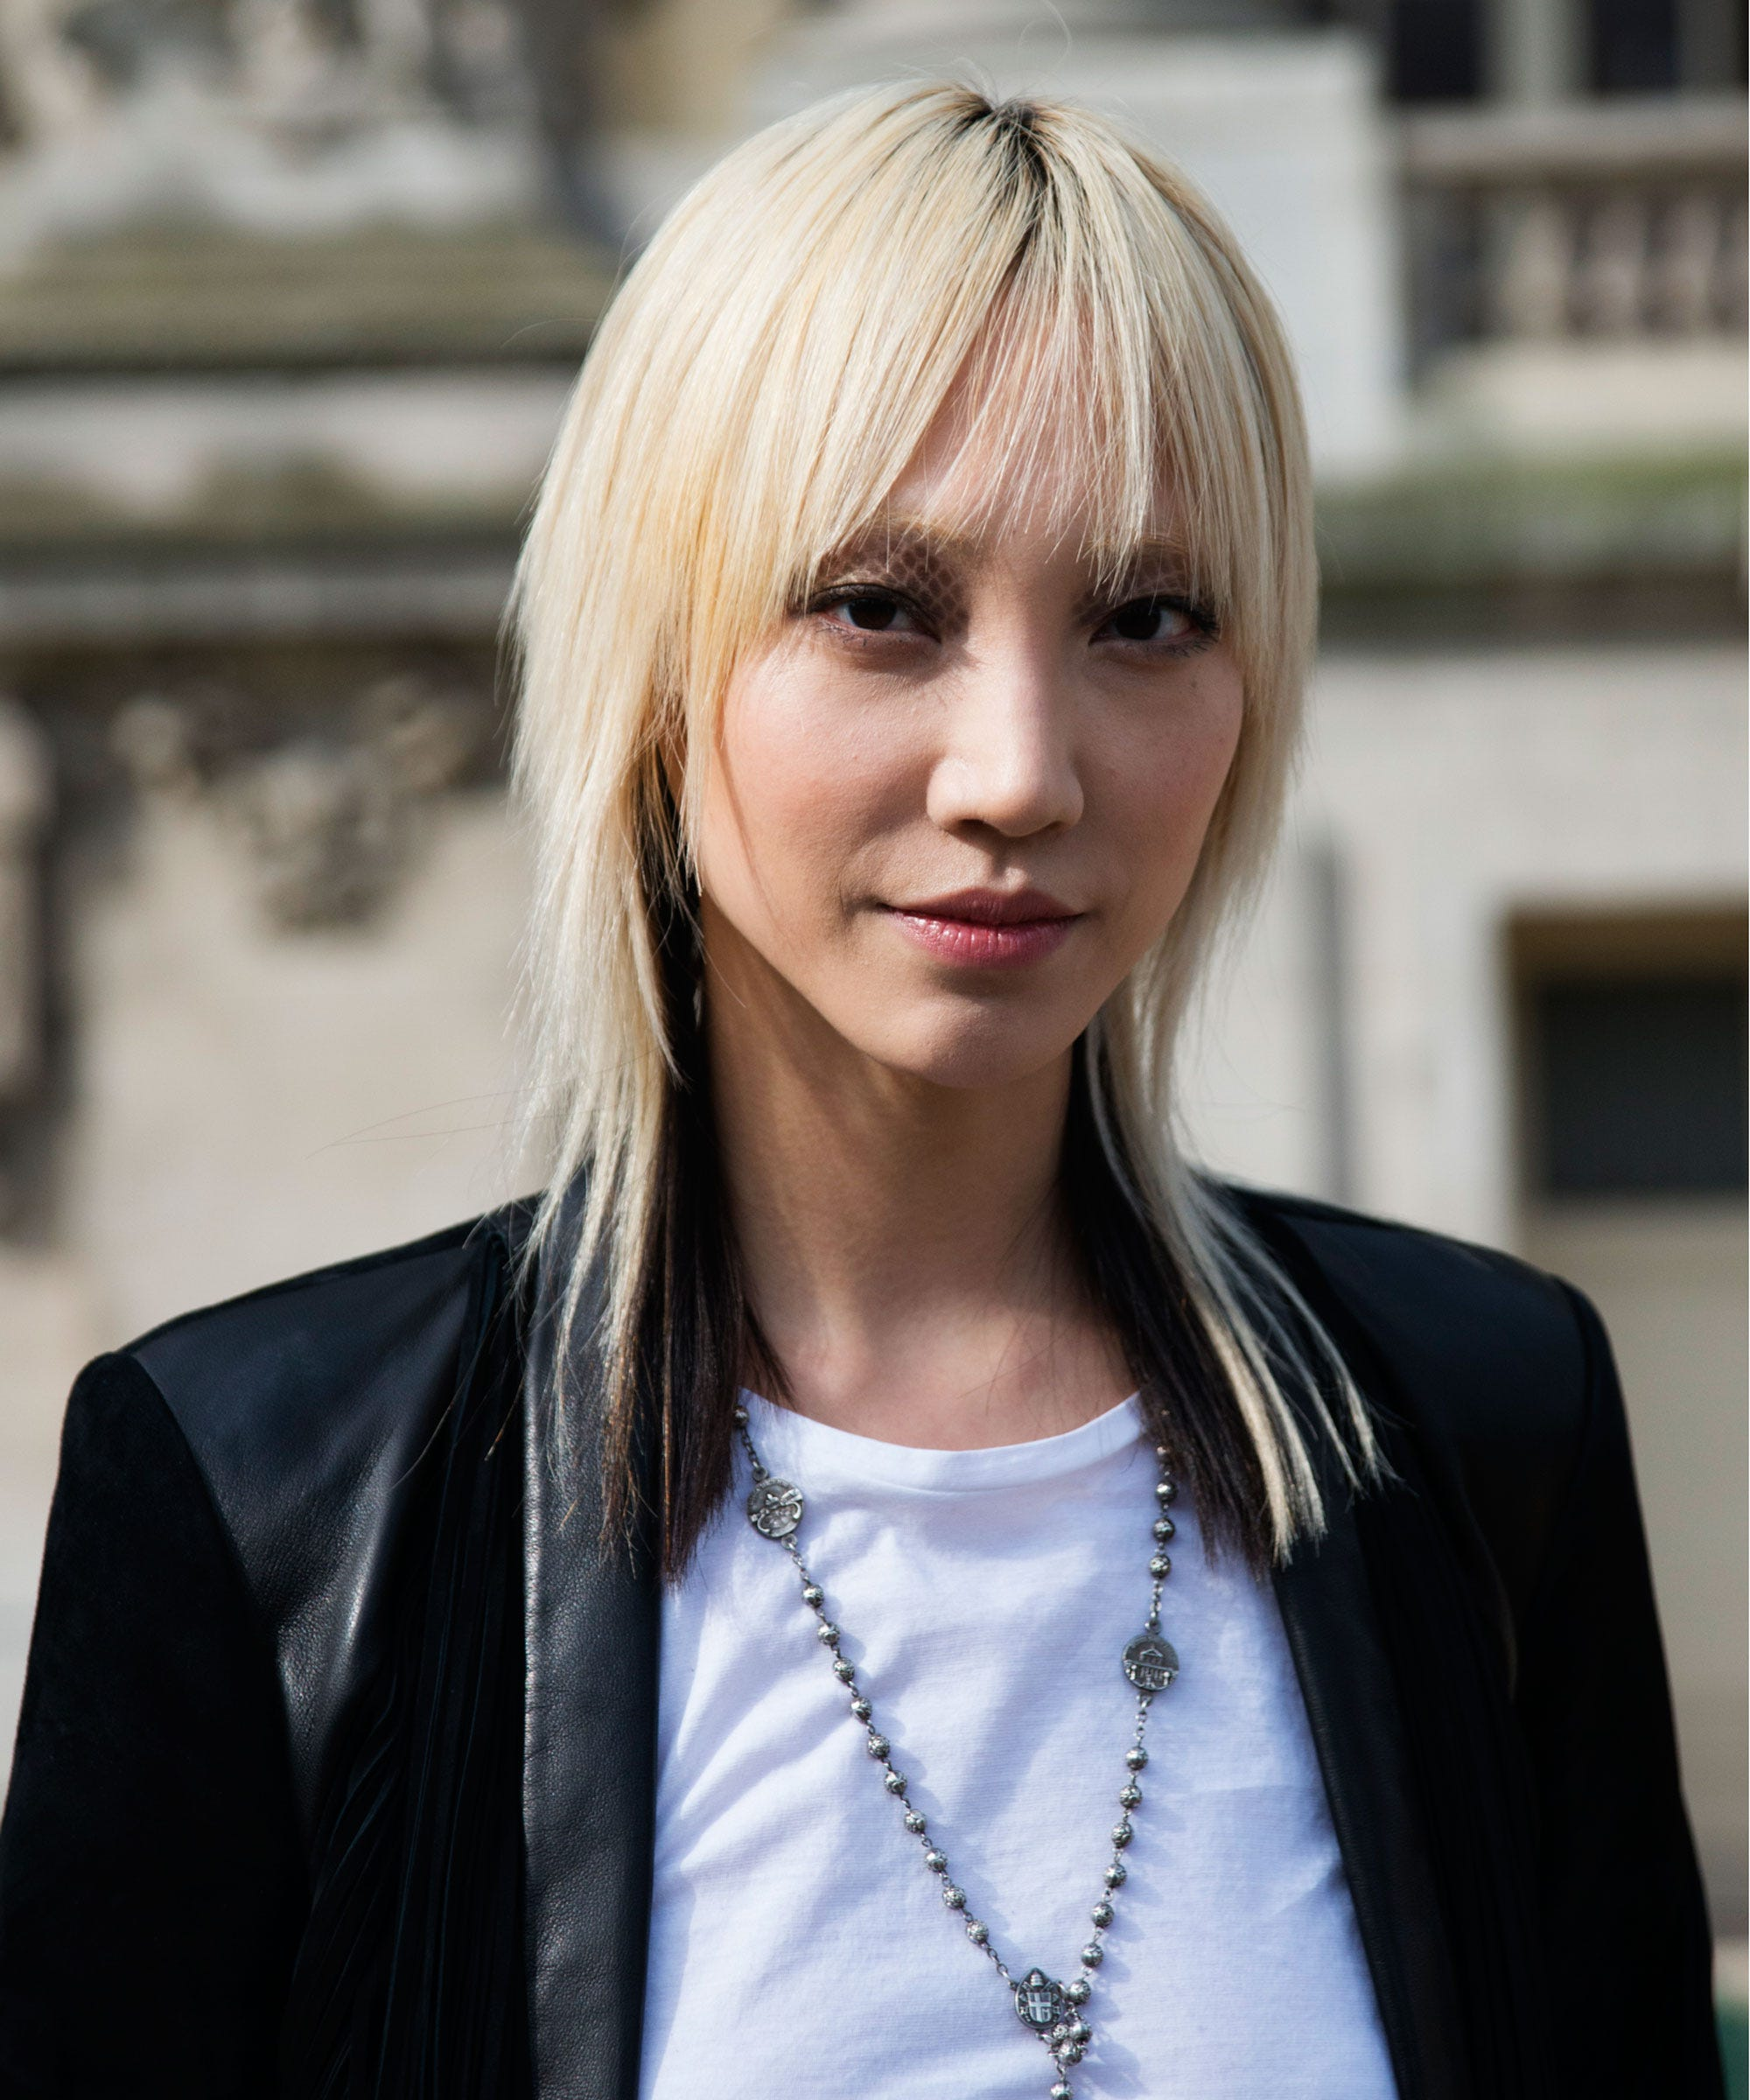 Hot Soo Joo Park naked (67 foto and video), Ass, Paparazzi, Twitter, swimsuit 2020